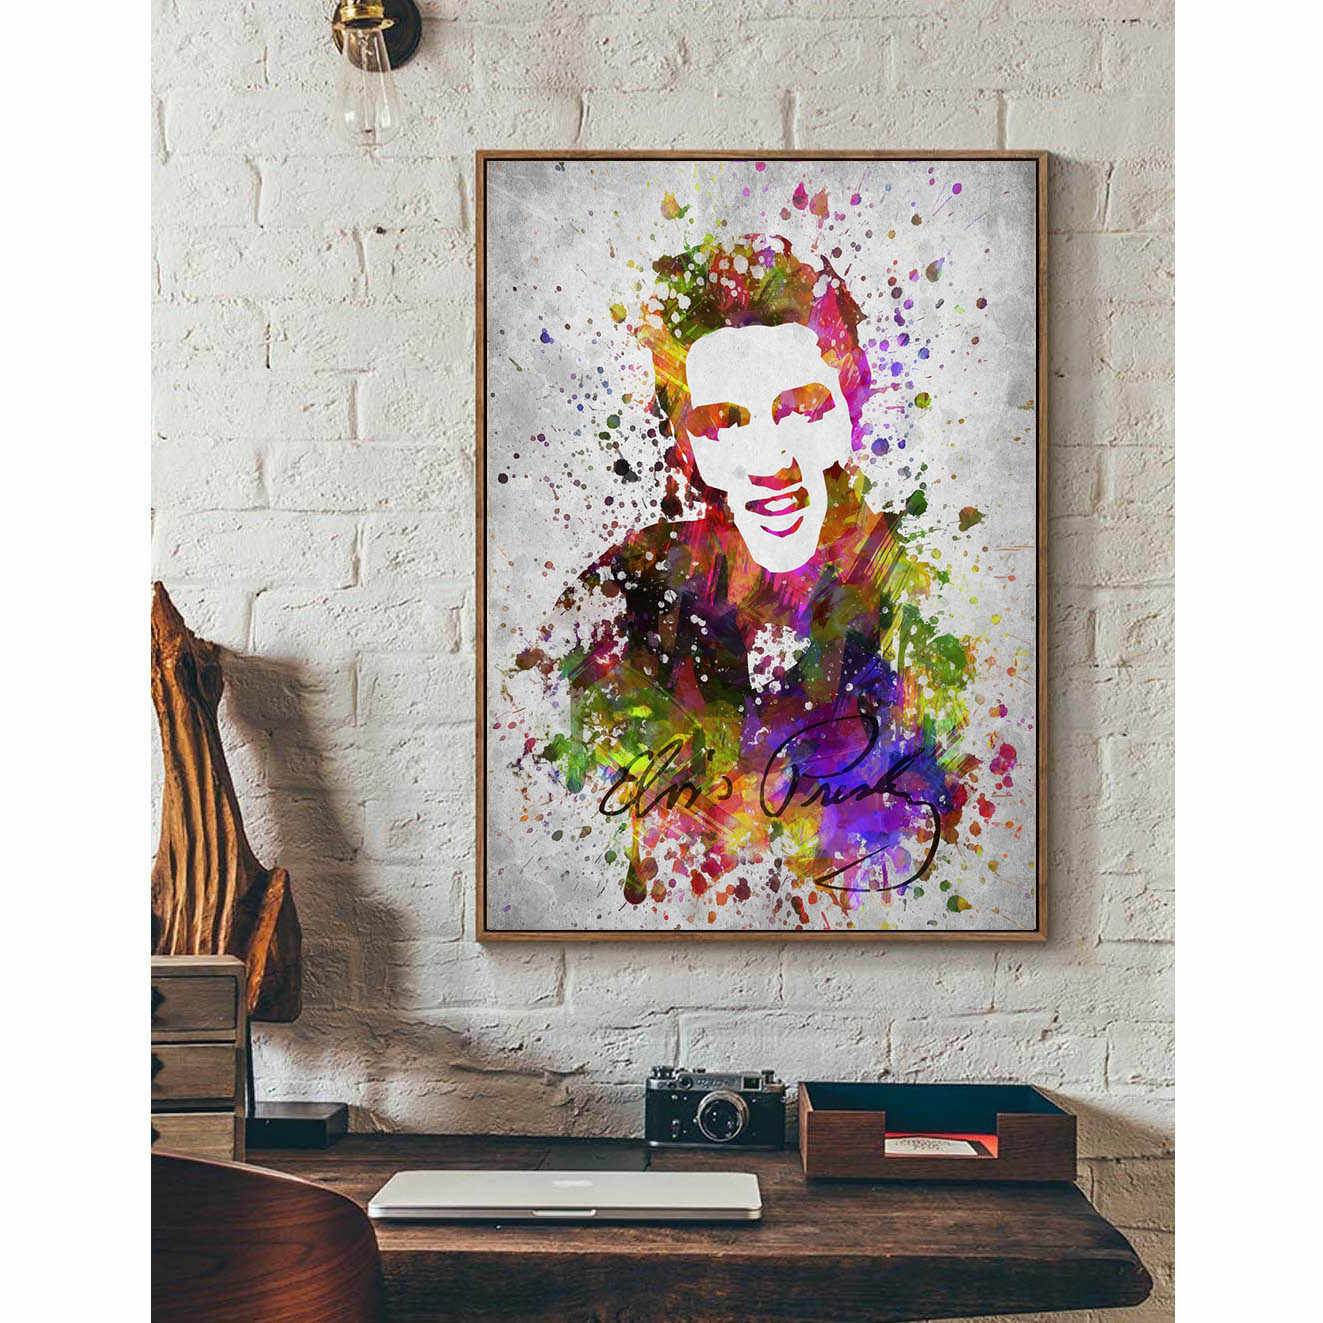 Elvis Presley Minimalism Art Canvas Poster Print Music Rapper Star Watercolor Style Picture for Modern Home Decor Gift FA105